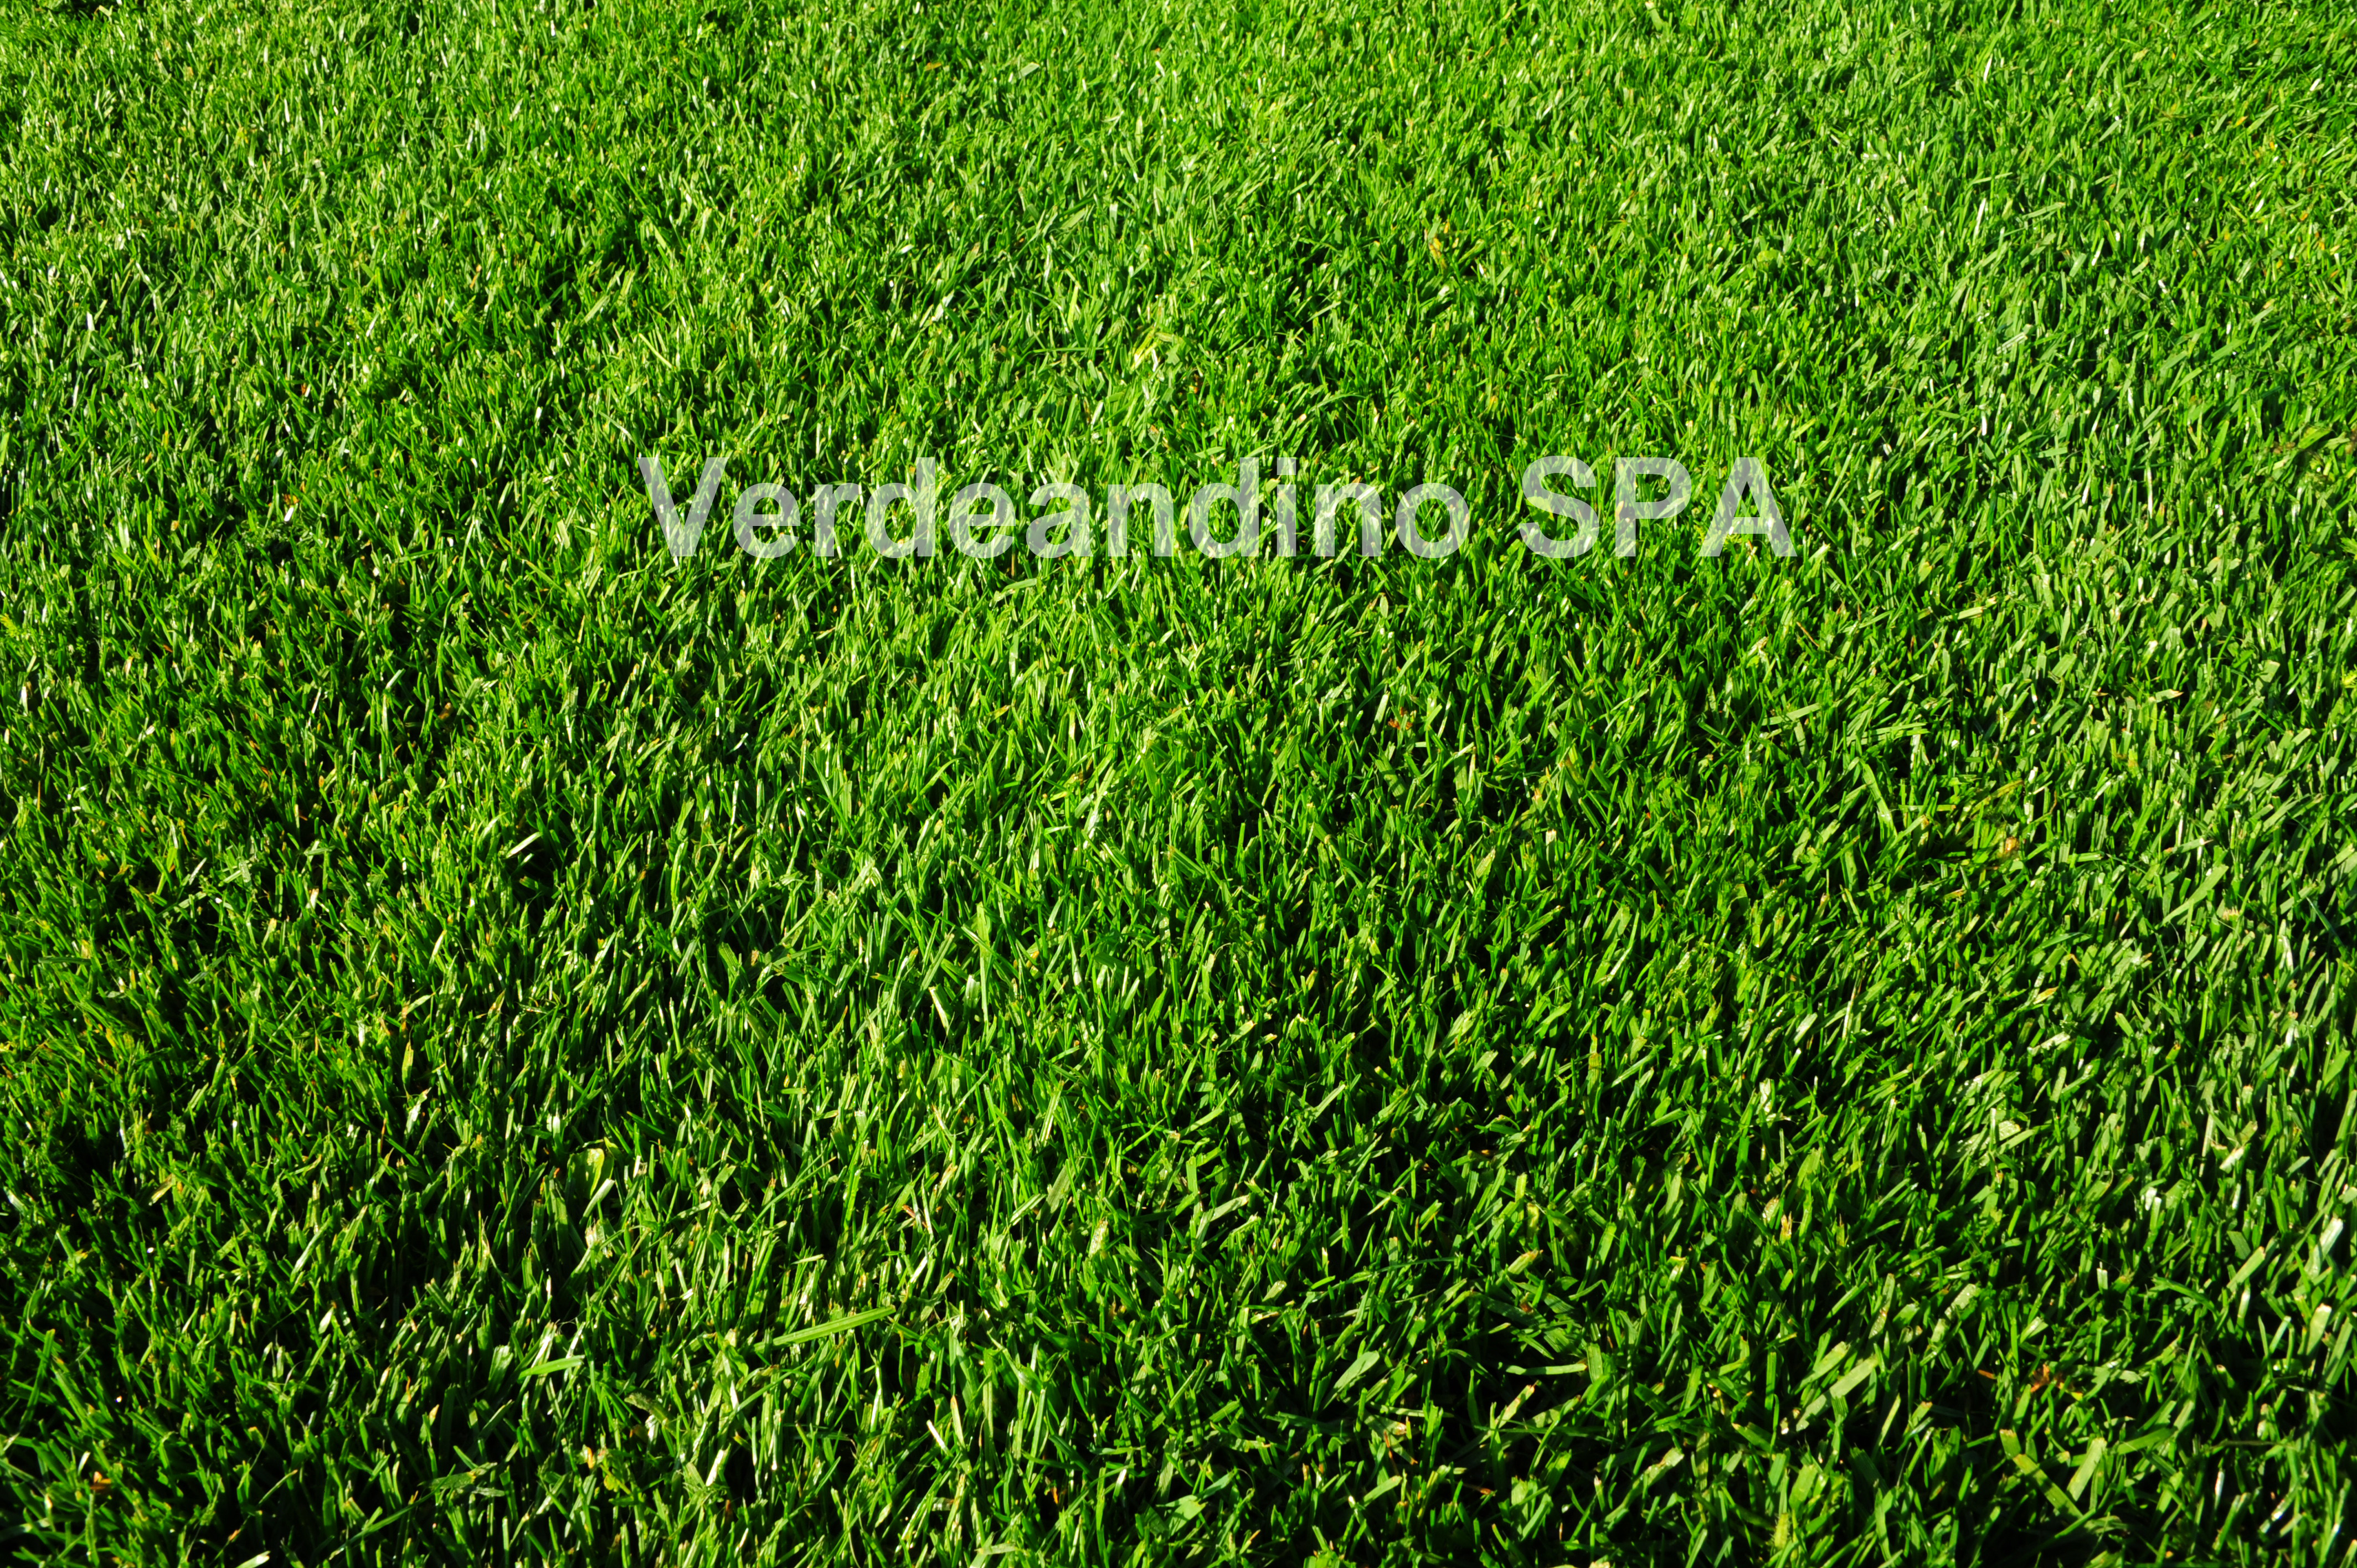 Tipos de cesped natural beautiful tipos de csped - Cesped natural o artificial ...